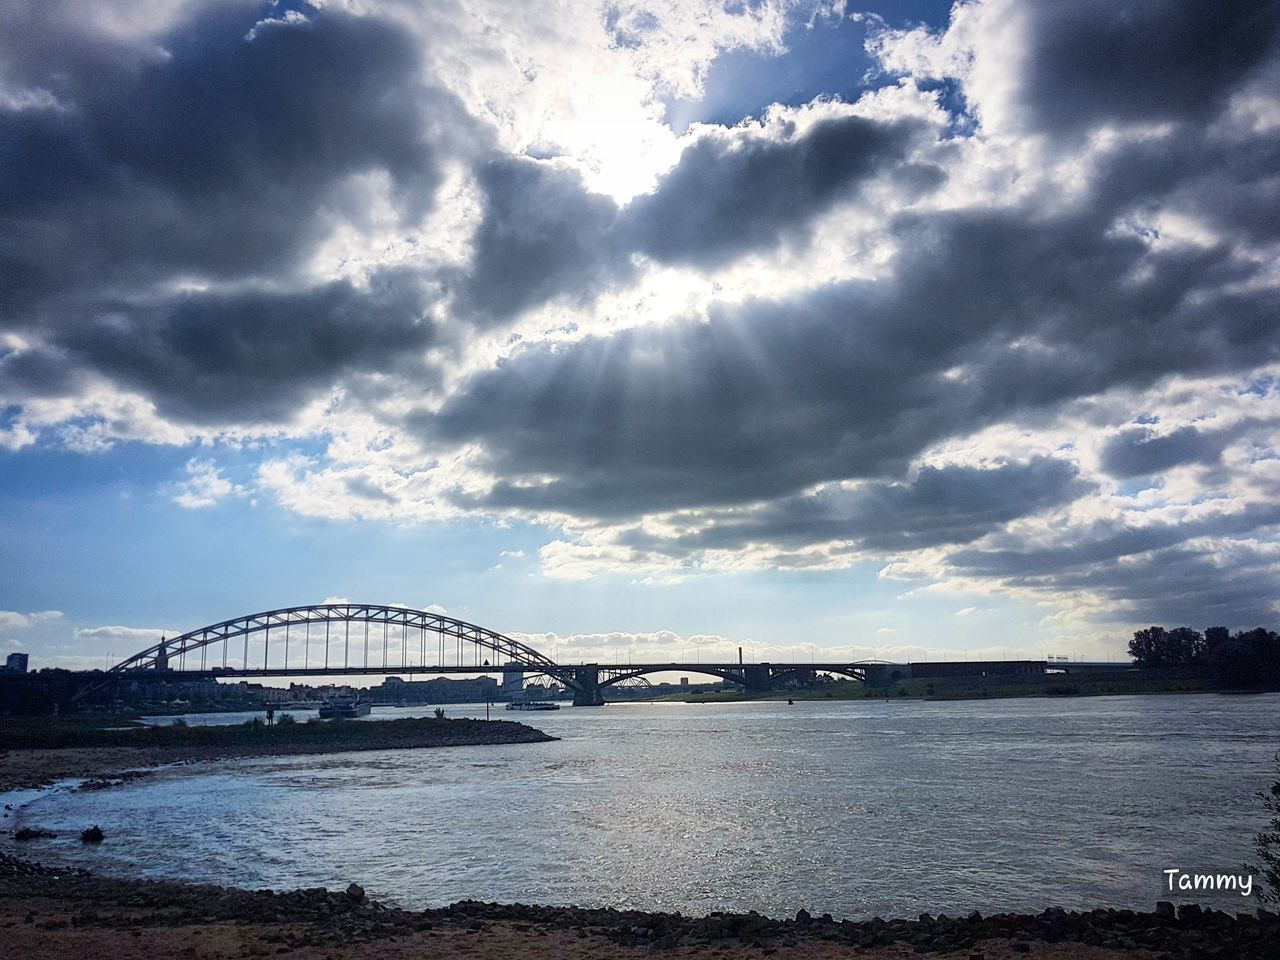 cloud - sky, sky, architecture, built structure, bridge - man made structure, connection, water, sea, no people, scenics, travel destinations, transportation, outdoors, building exterior, day, nature, tranquility, city, beauty in nature, cityscape